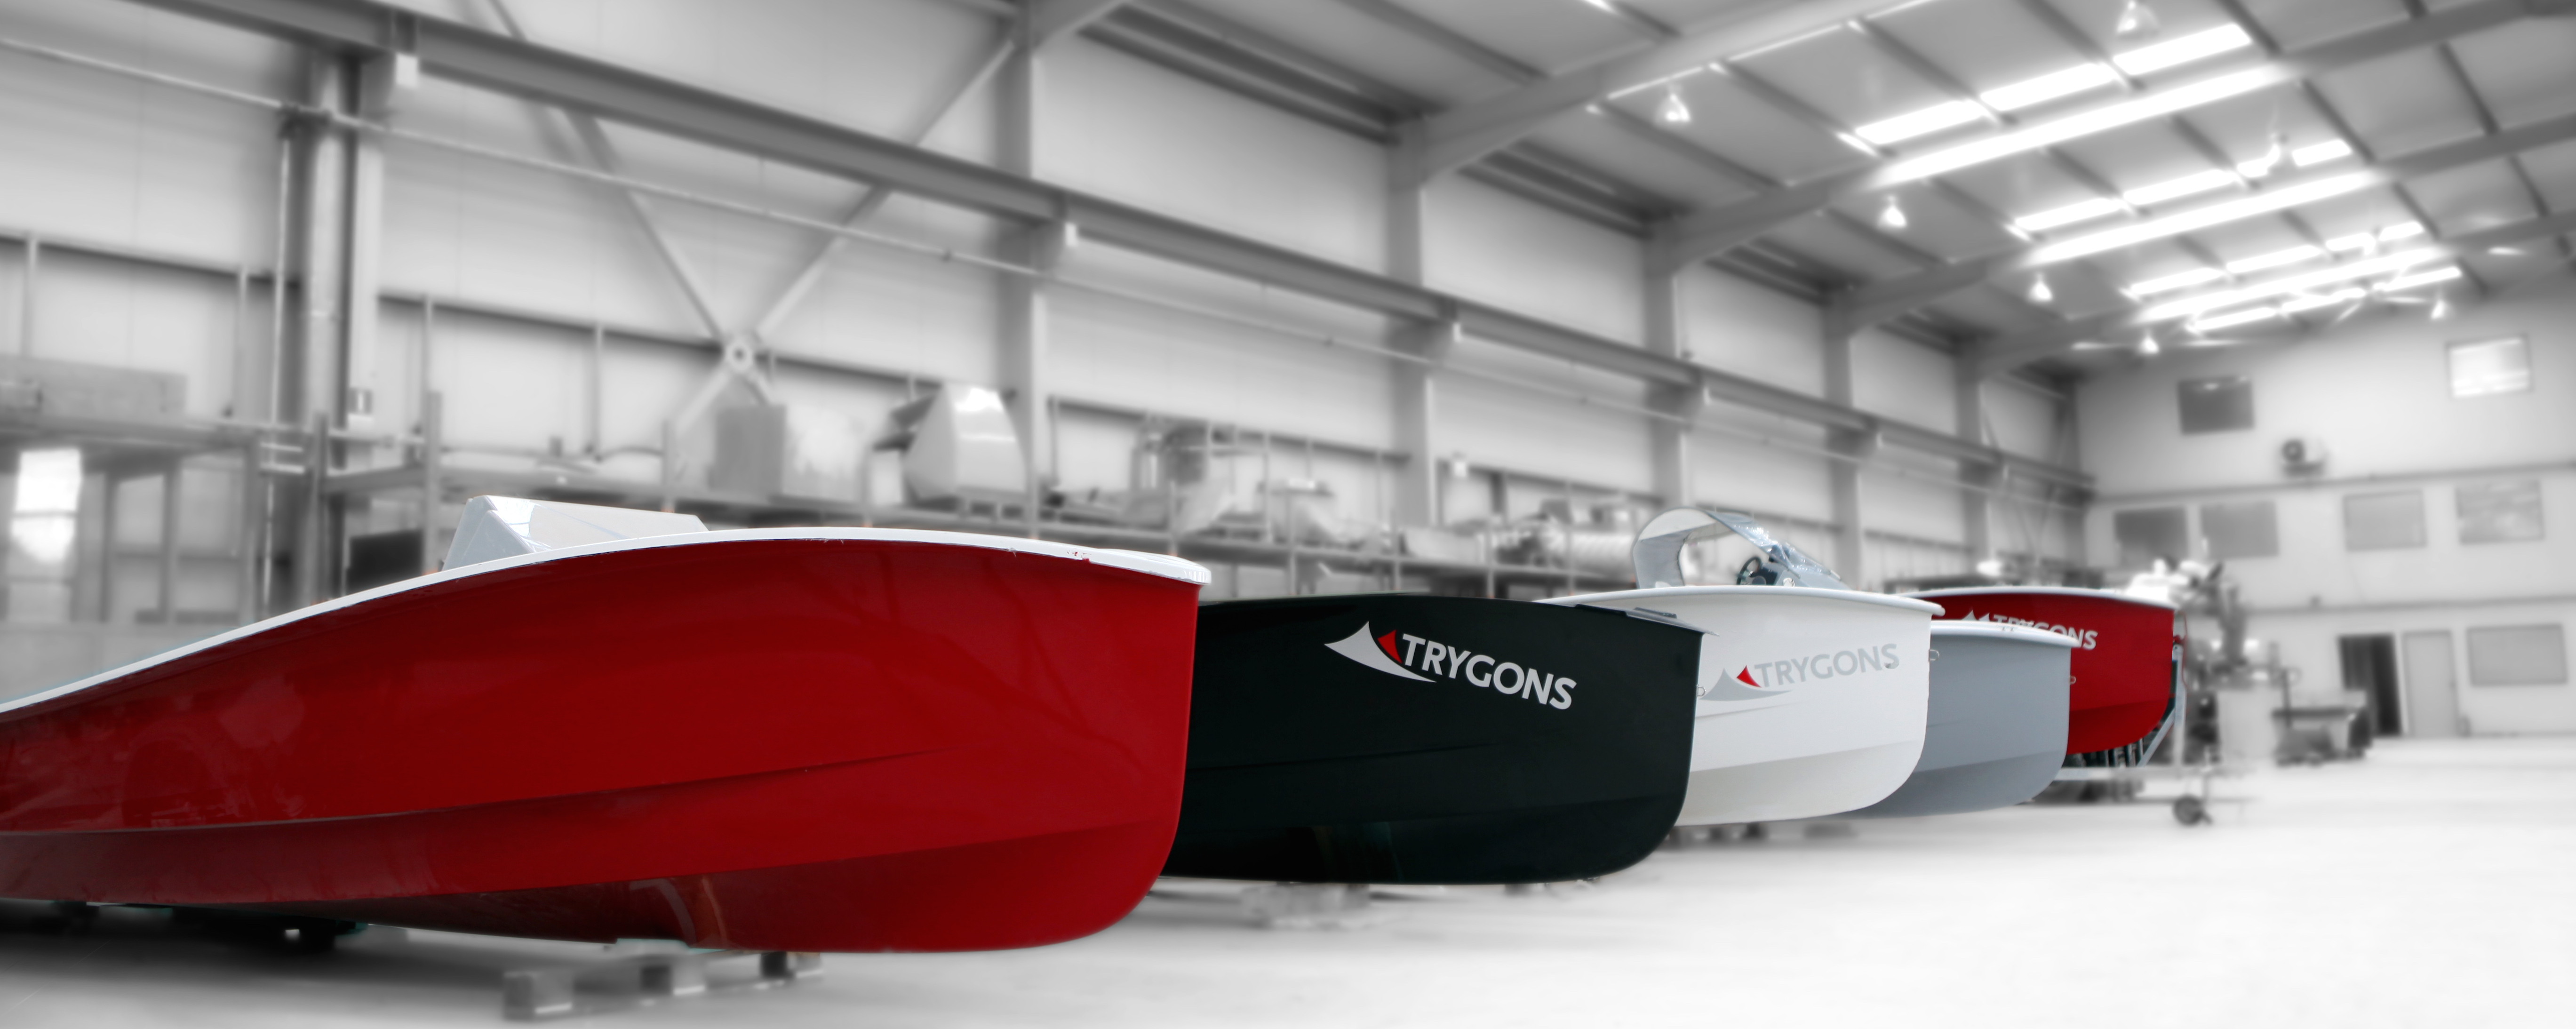 TRYGONS EcoRunner boat in its most popular colors